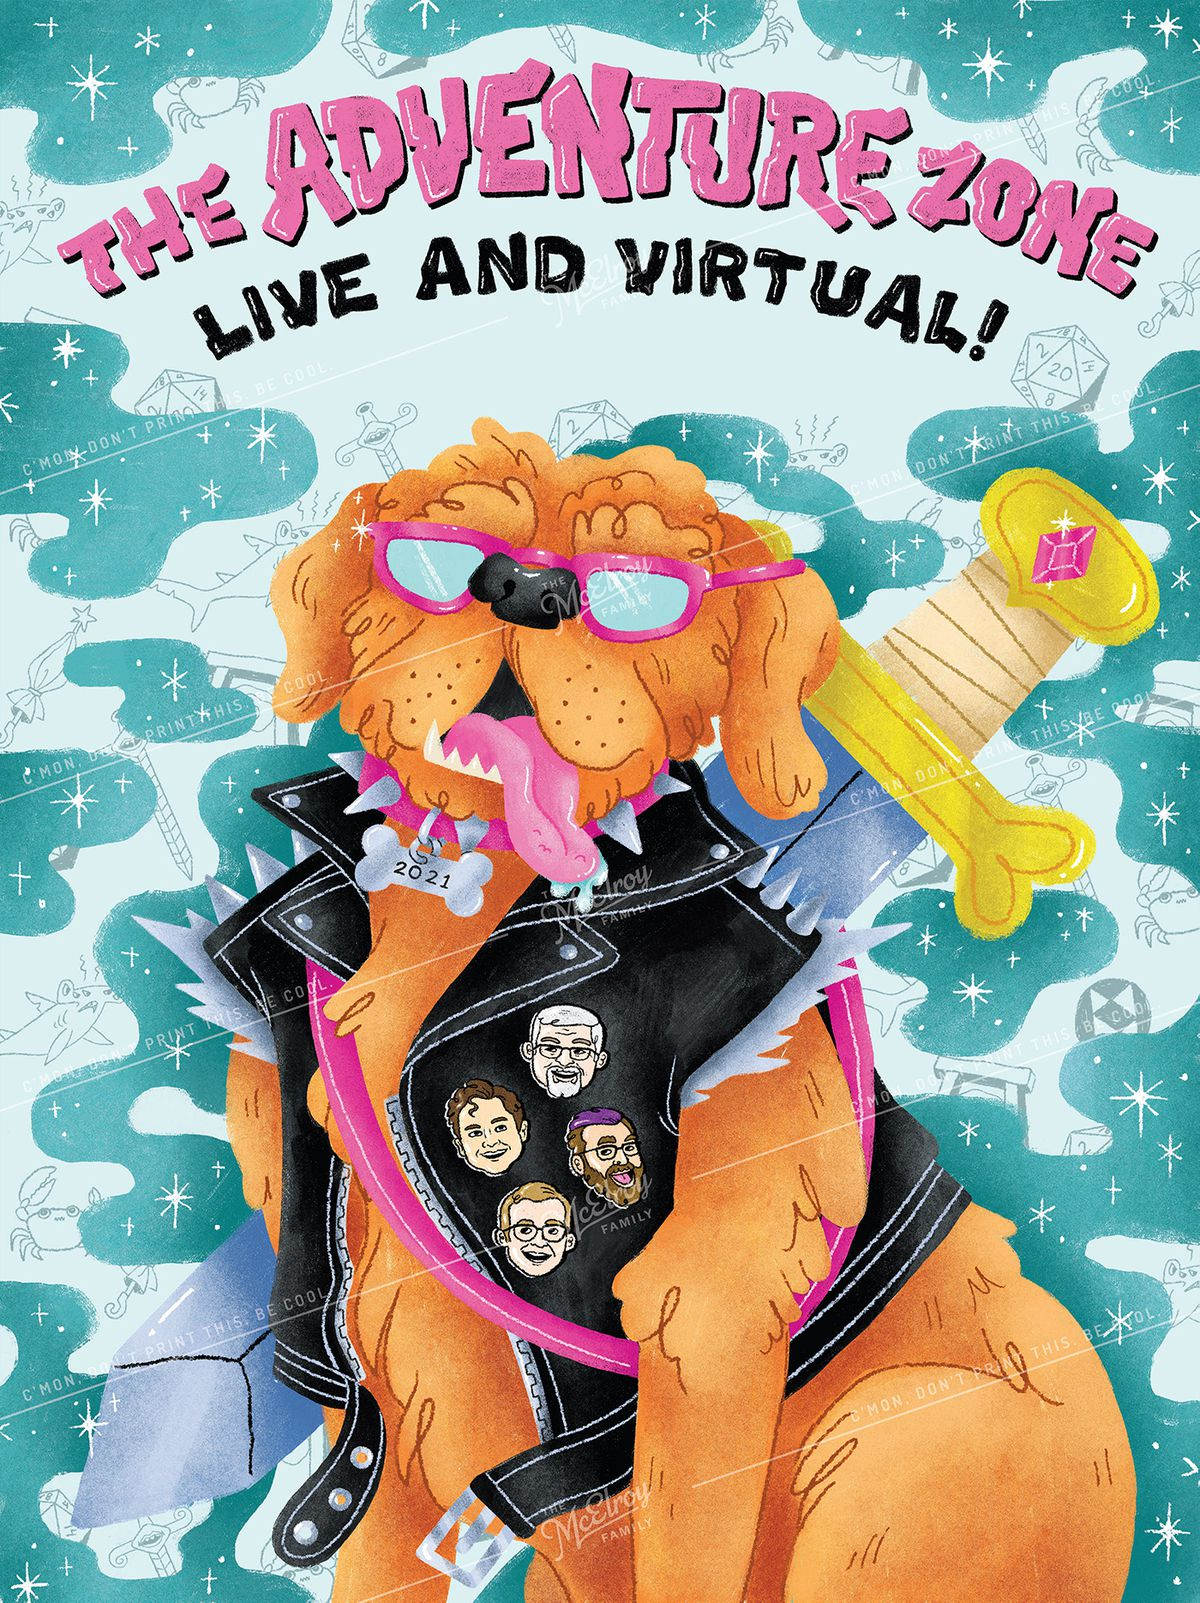 """The text at the top reads """"The Adventure Zone live and virtual!"""" In the center of the poster is an orange dog wearing a black vest, pink sunglasses, and a pink collar that says """"2021"""" on a dog bone tag. It's tongue is hanging out. It has a large sword on its back with pins of the McElroy family on its vest. The background is light blue with sharks, crabs, swords, dice, umbrellas, and BoB logos. Overlapping the designs are teal clouds with stars in them."""